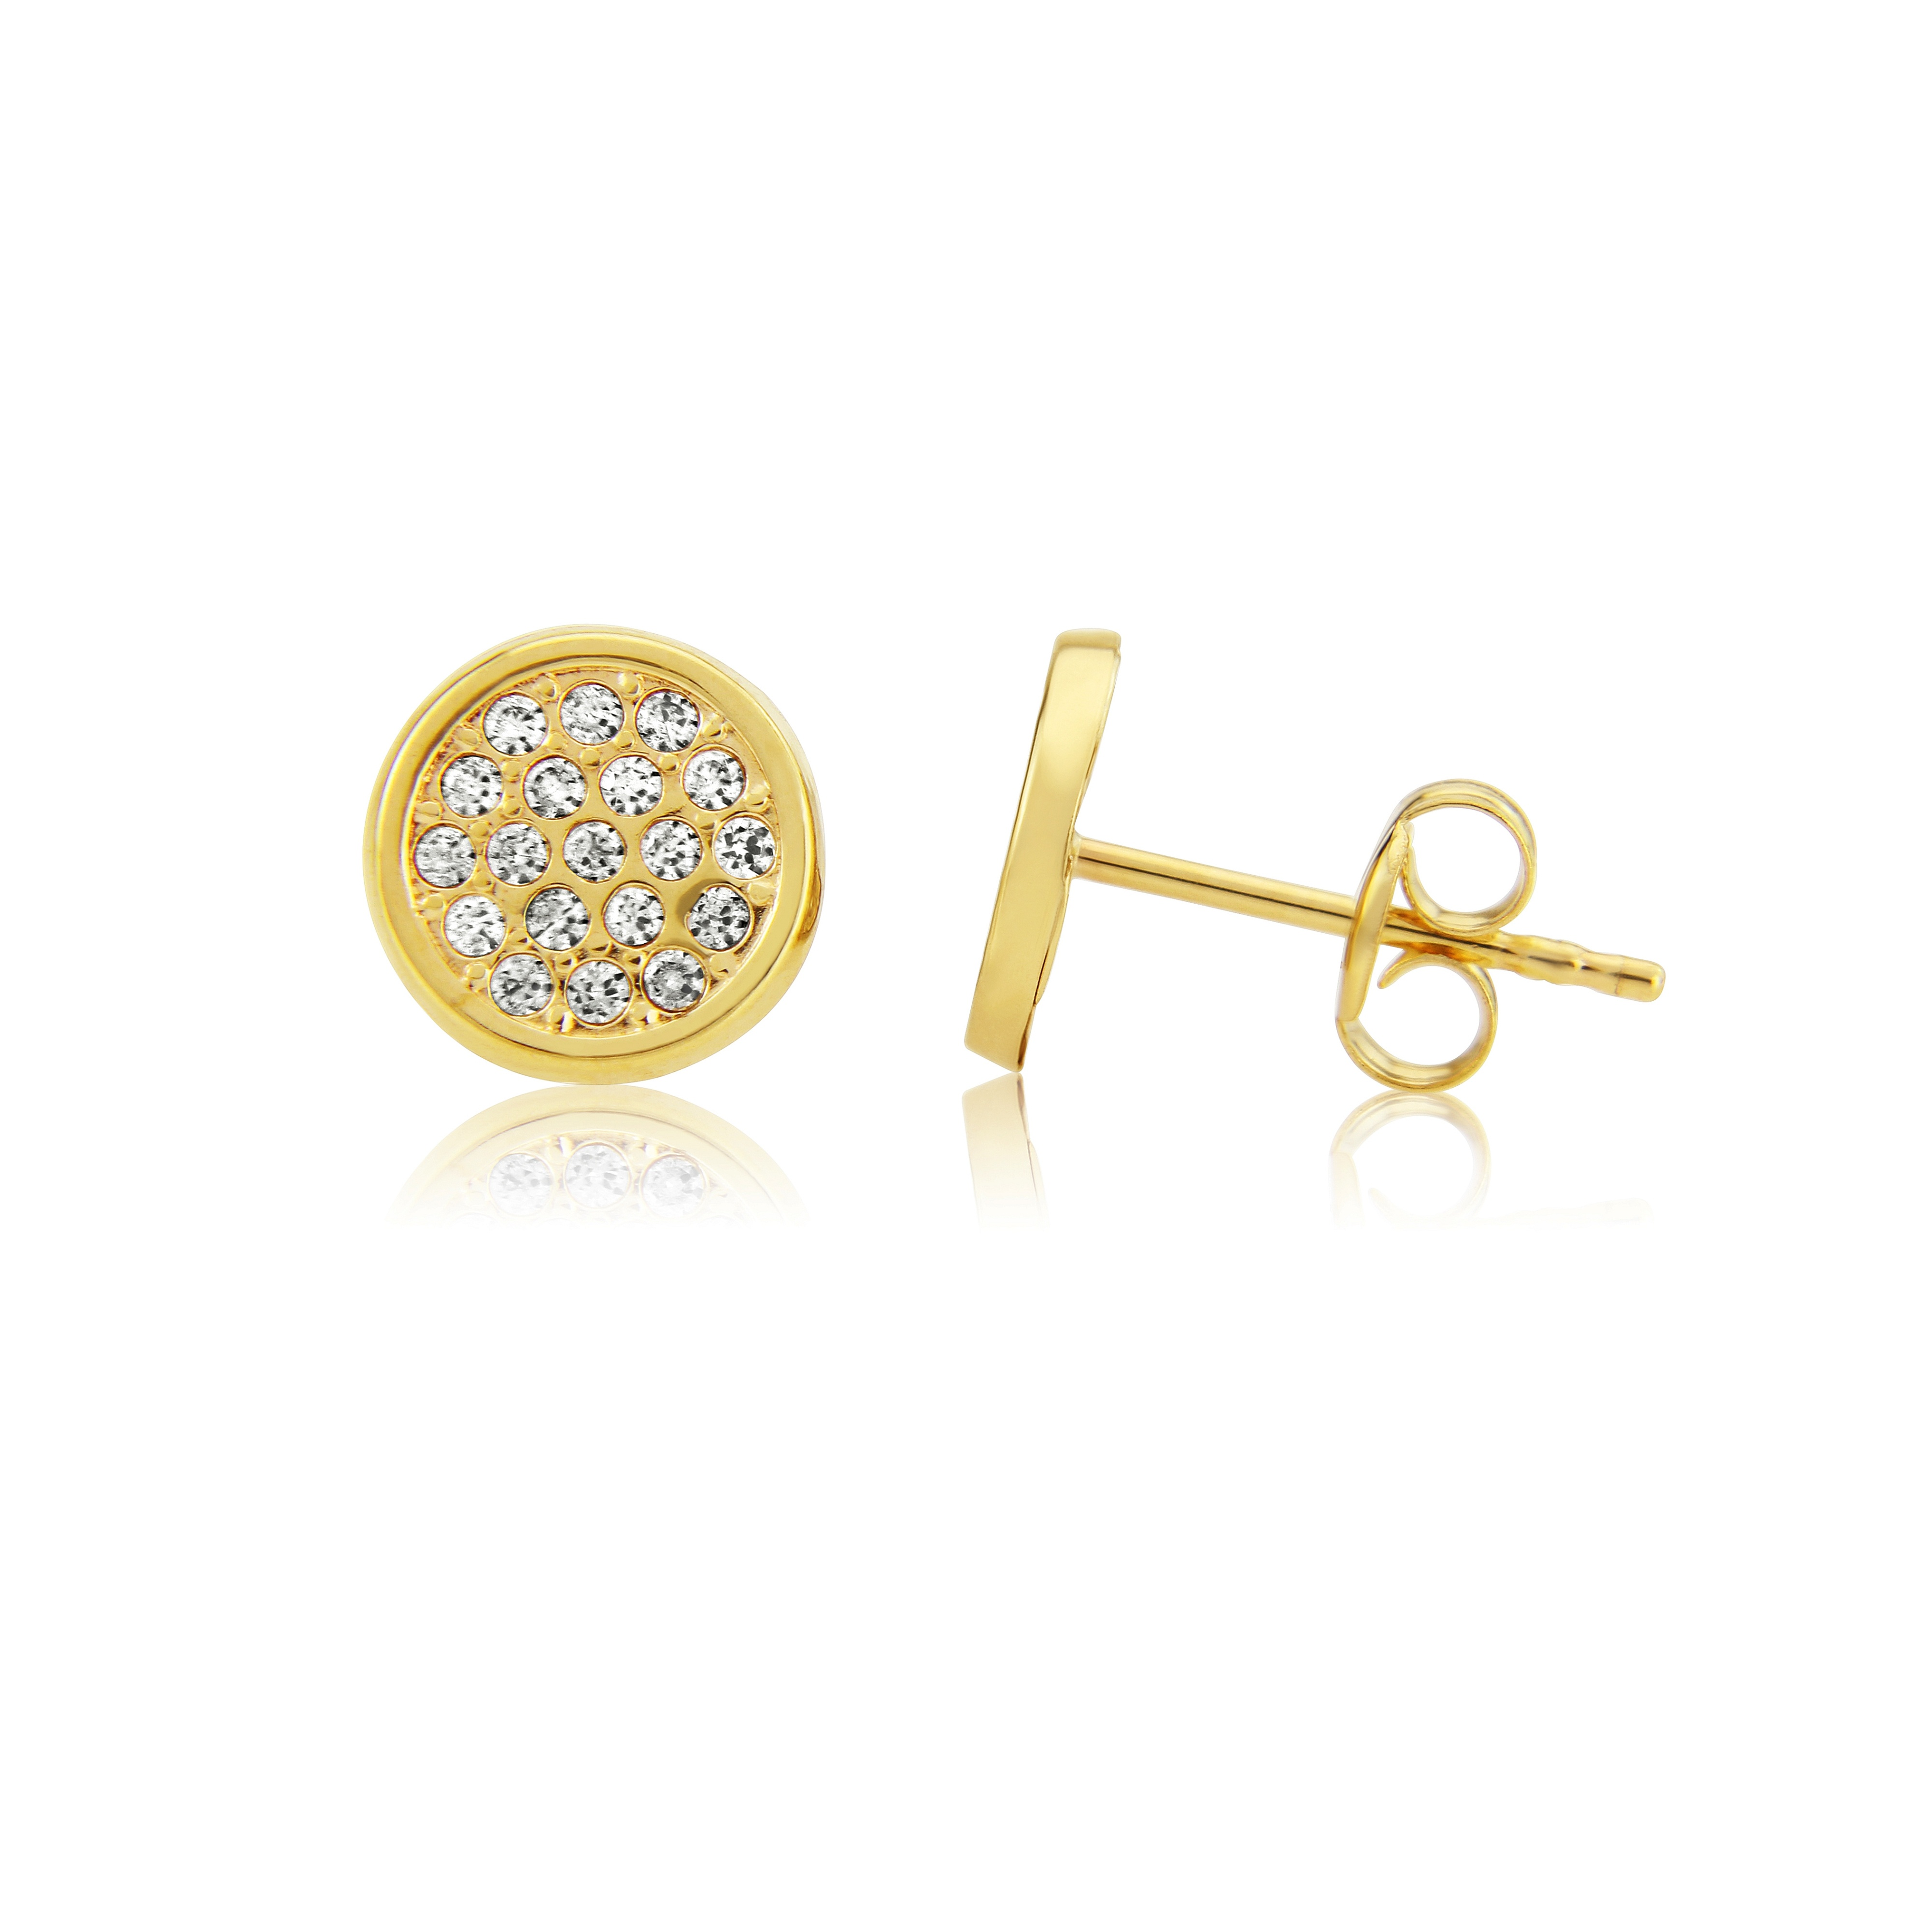 9ct Yellow Gold Pave CZ Stud Earrings